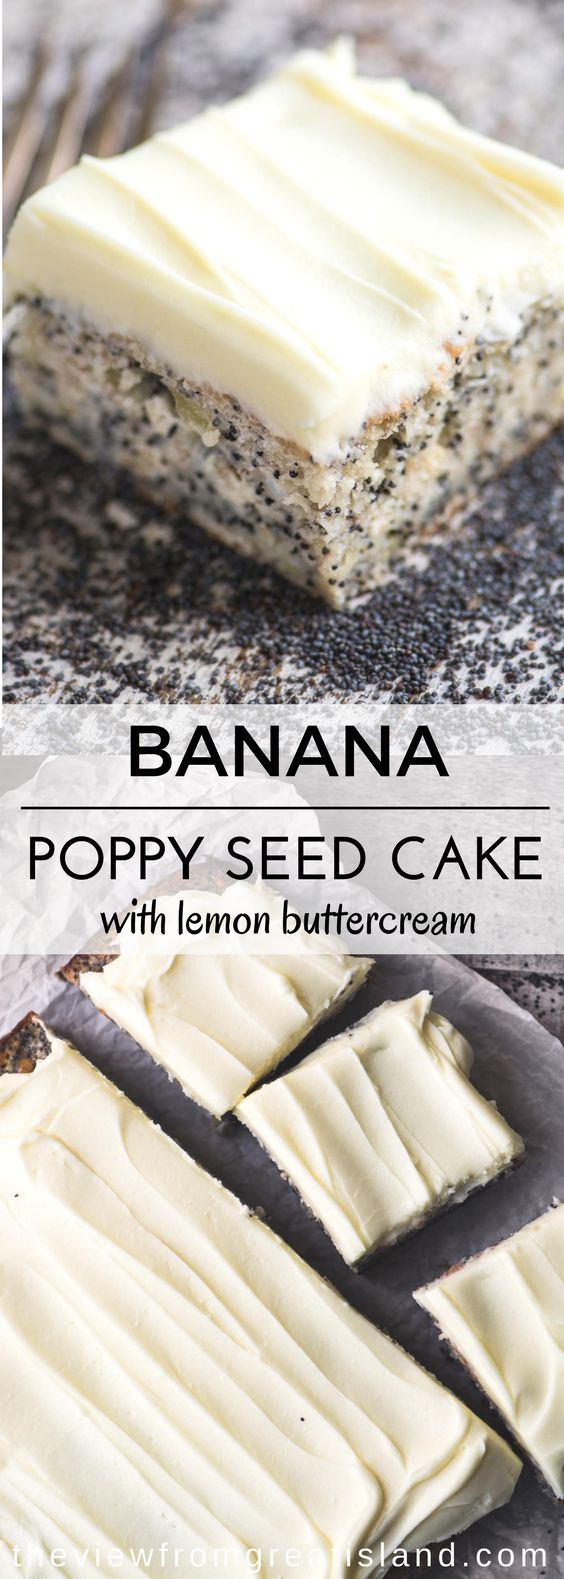 ***Banana Poppy Seed Cake with Lemon Buttercream ~ an easy snack cake made with bananas and poppy seeds, generoulsy topped with a lemon frosting ~ you can whip up this easy one bowl cake in no time.